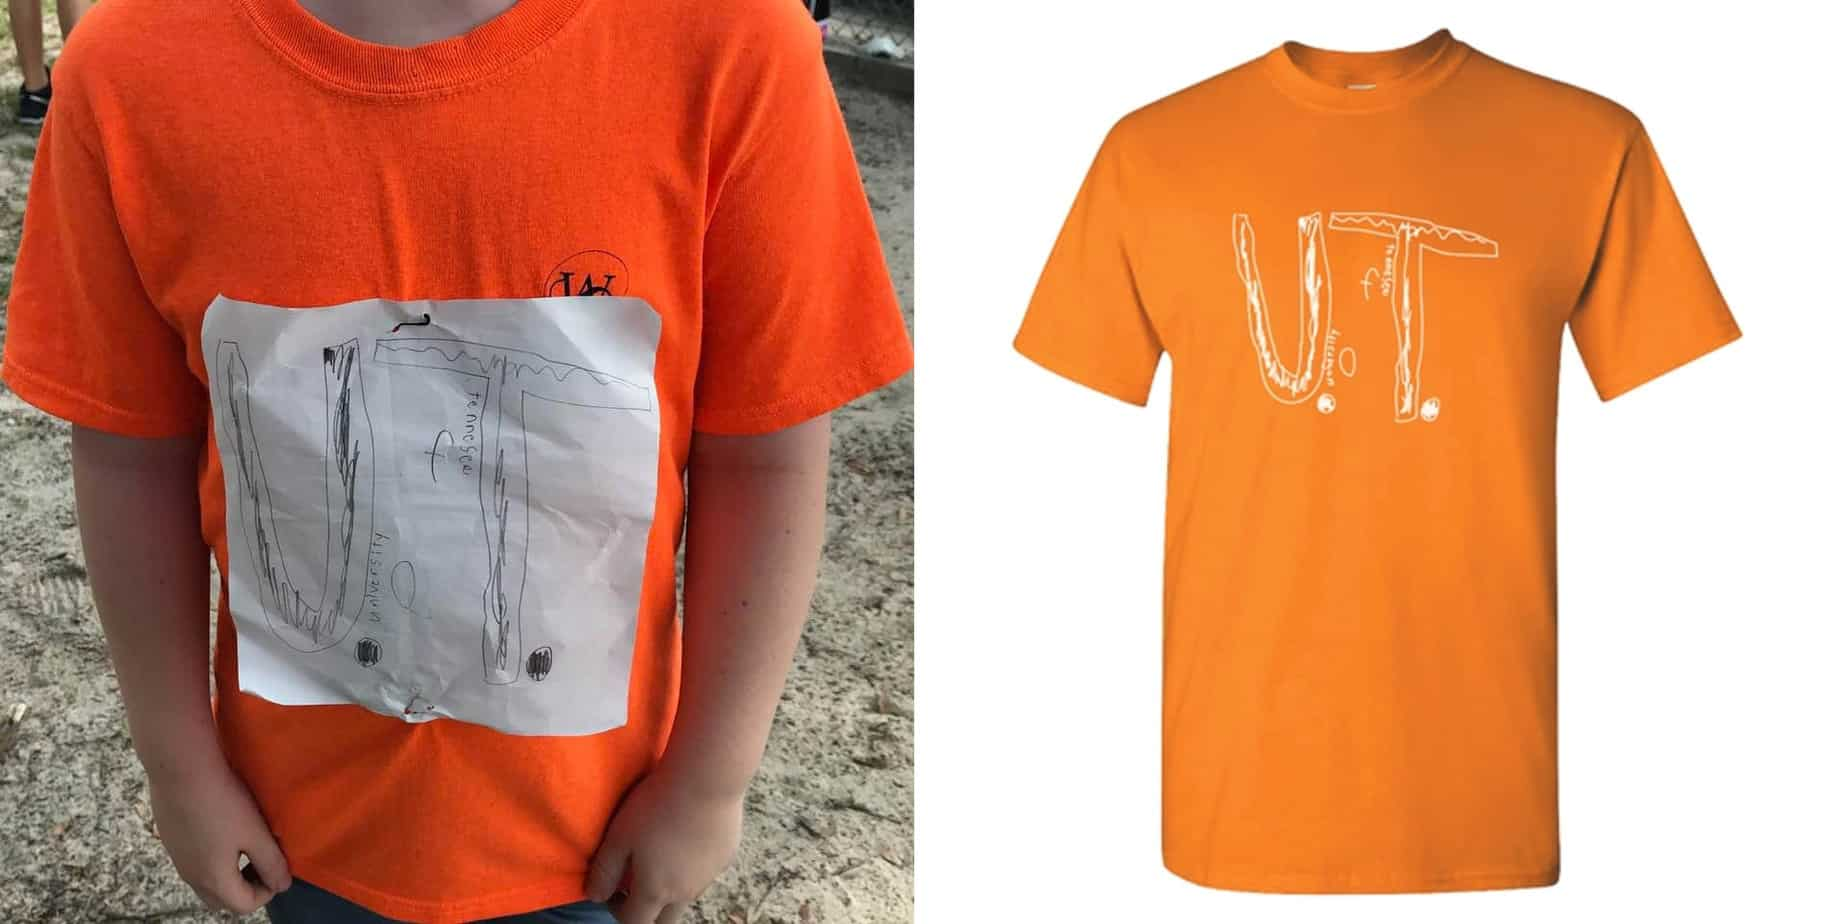 Tennessee kid design shirt